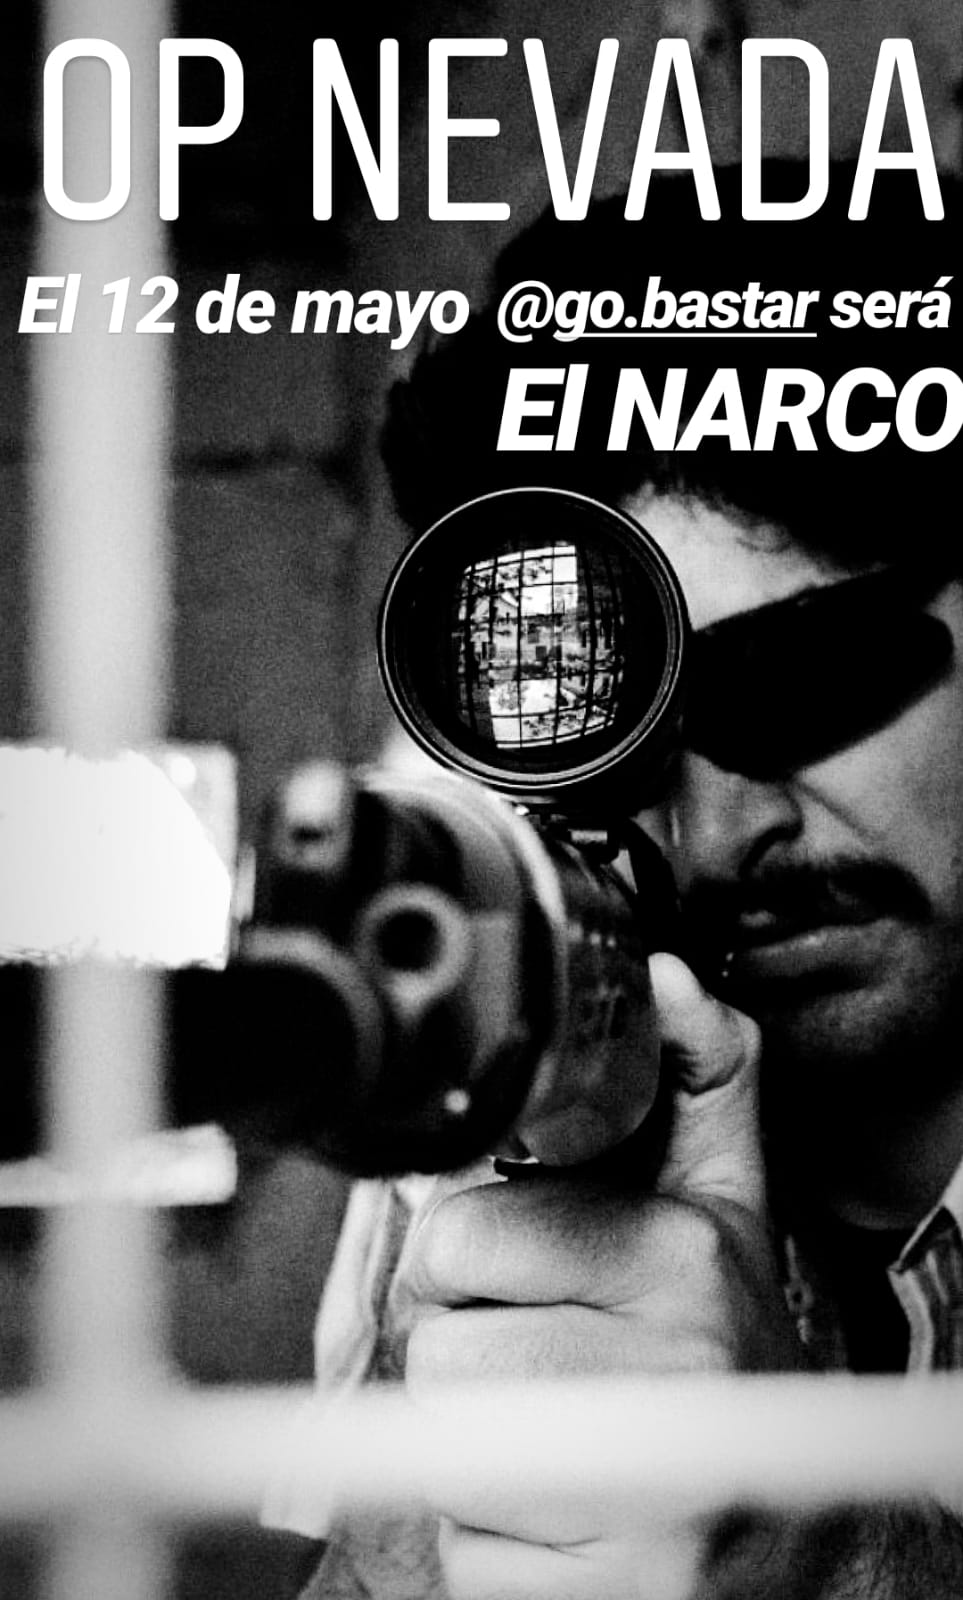 Narcos Domingo 12 Mayo 2019 By Nukemairsoft & eriheriar.airsoft Bastar11